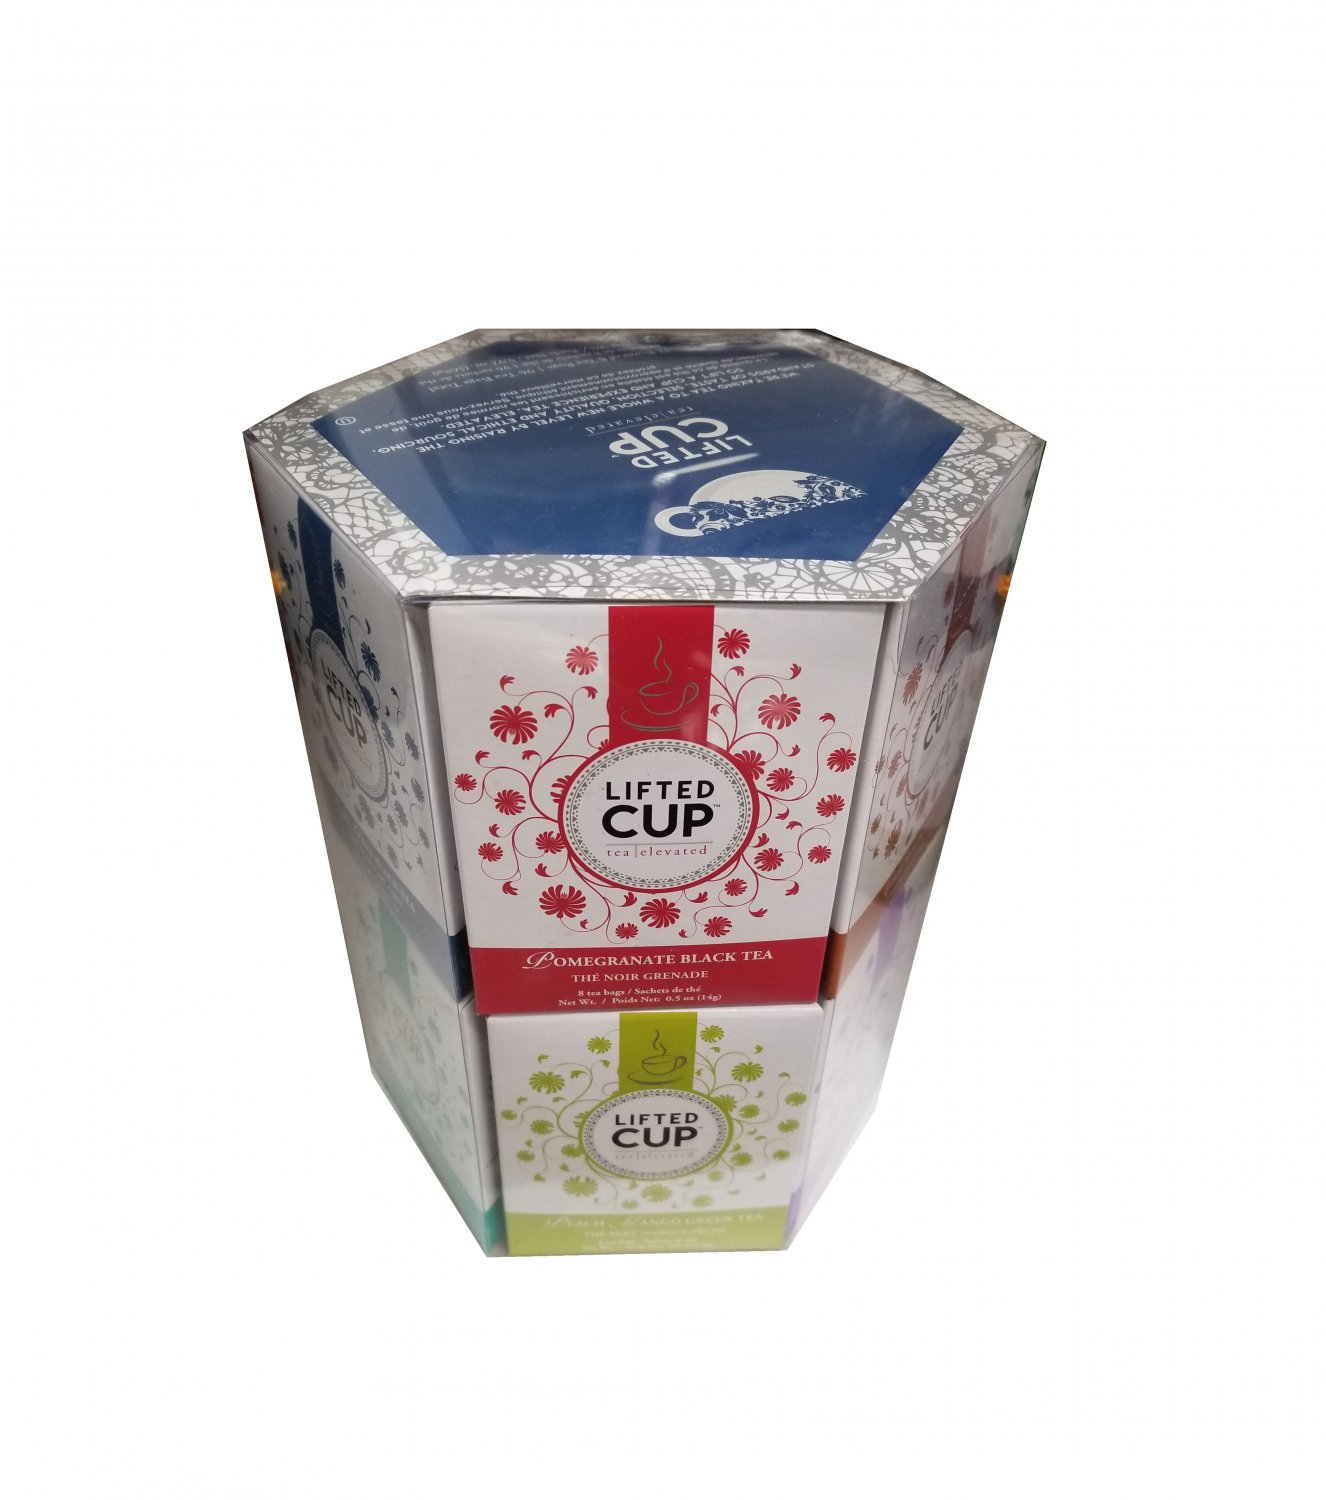 Specialty Tea Selection Lifted Cup Gift Box 96 tea bags - 12 flavors New Gift Idea